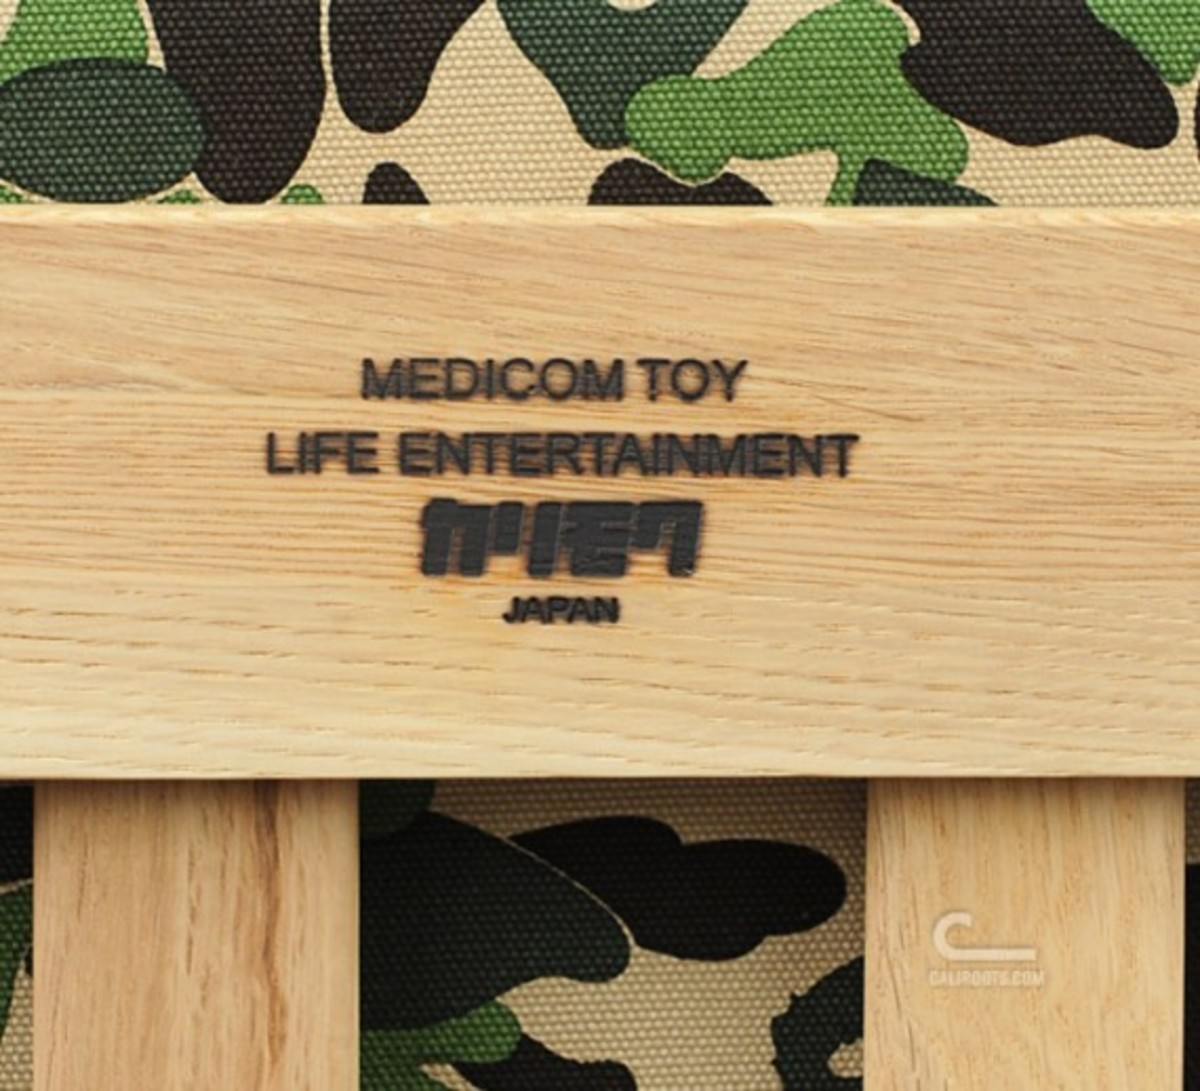 a-bathing-ape-medicom-toy-karimoku-bape-camo-furniture-16